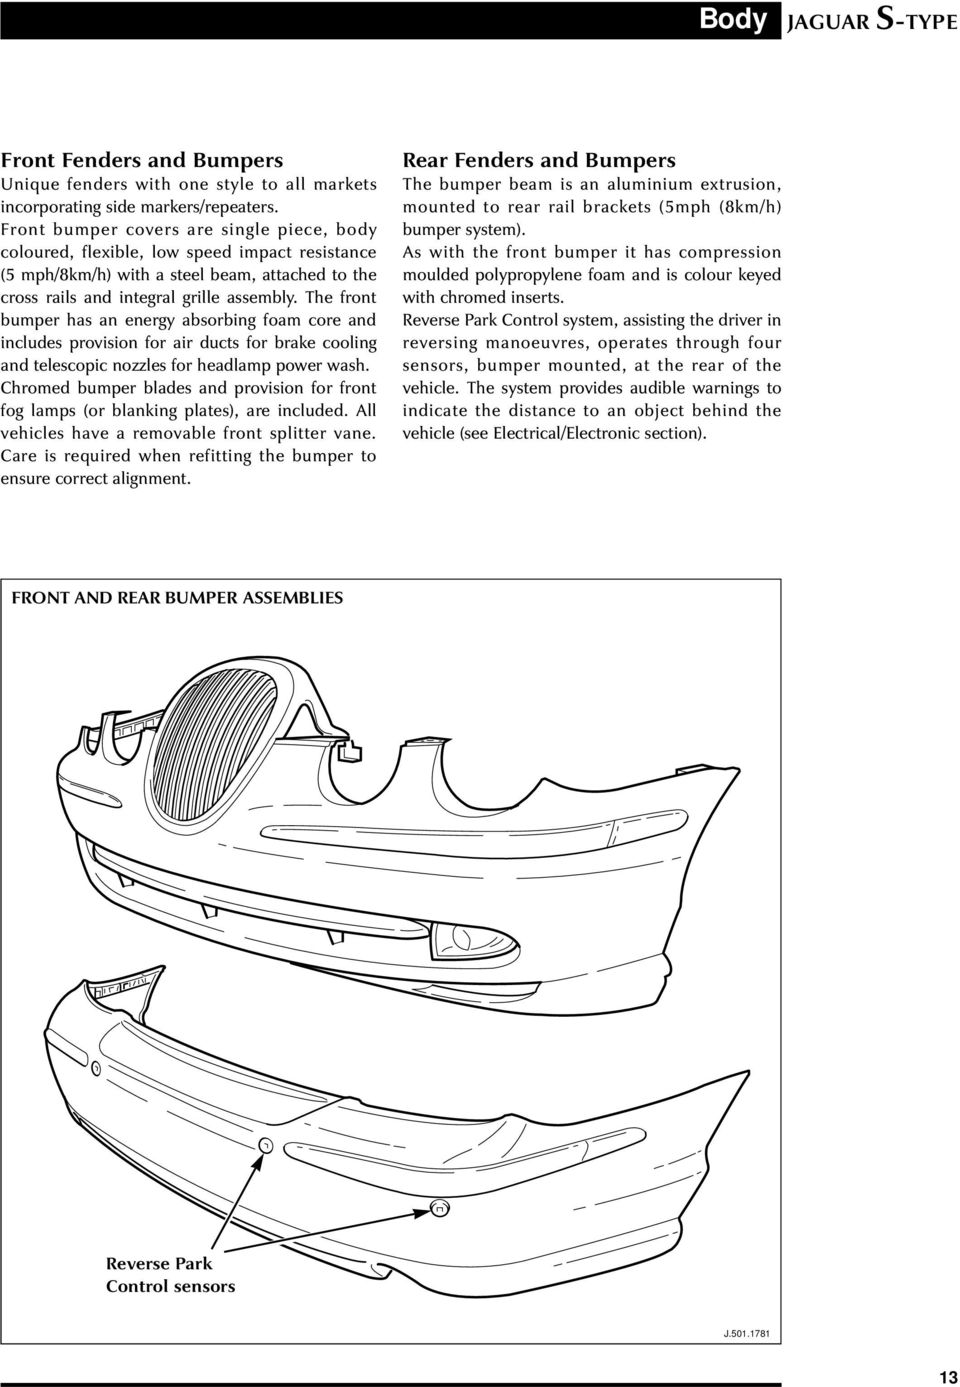 Jaguar S Type Sports Sedan Introduction Pdf X Engine Compartment Diagram The Front Bumper Has An Energy Absorbing Foam Core And Includes Provision For Air Ducts 19 Body Hood